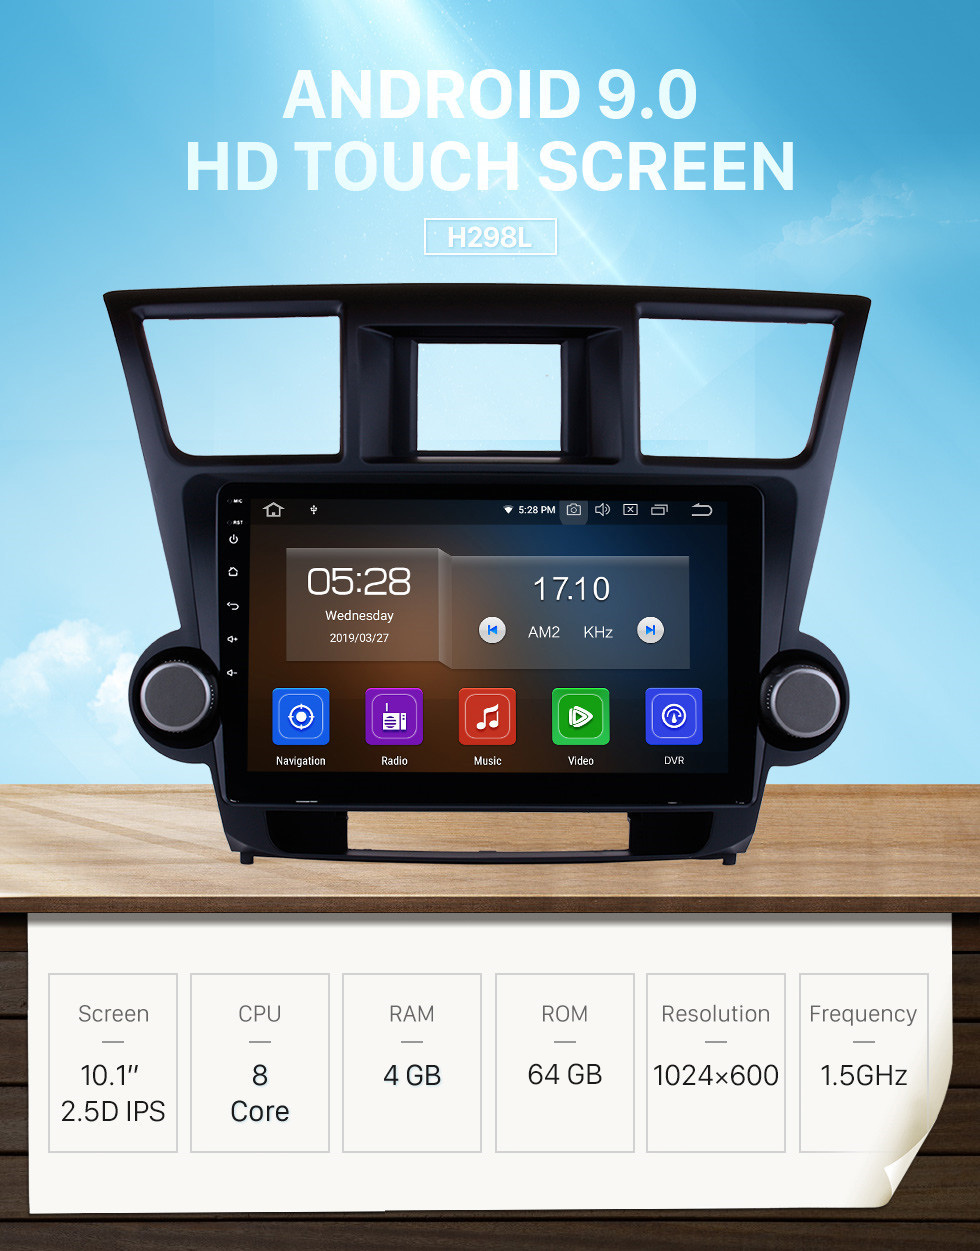 Seicane 10.1 inch HD Touchscreen 2009-2014 Toyota Highlander Android 9.0 GPS Navigation Radio Buletooth Music 4G Wifi Backup Camera WIFI DVR Steering Wheel Control